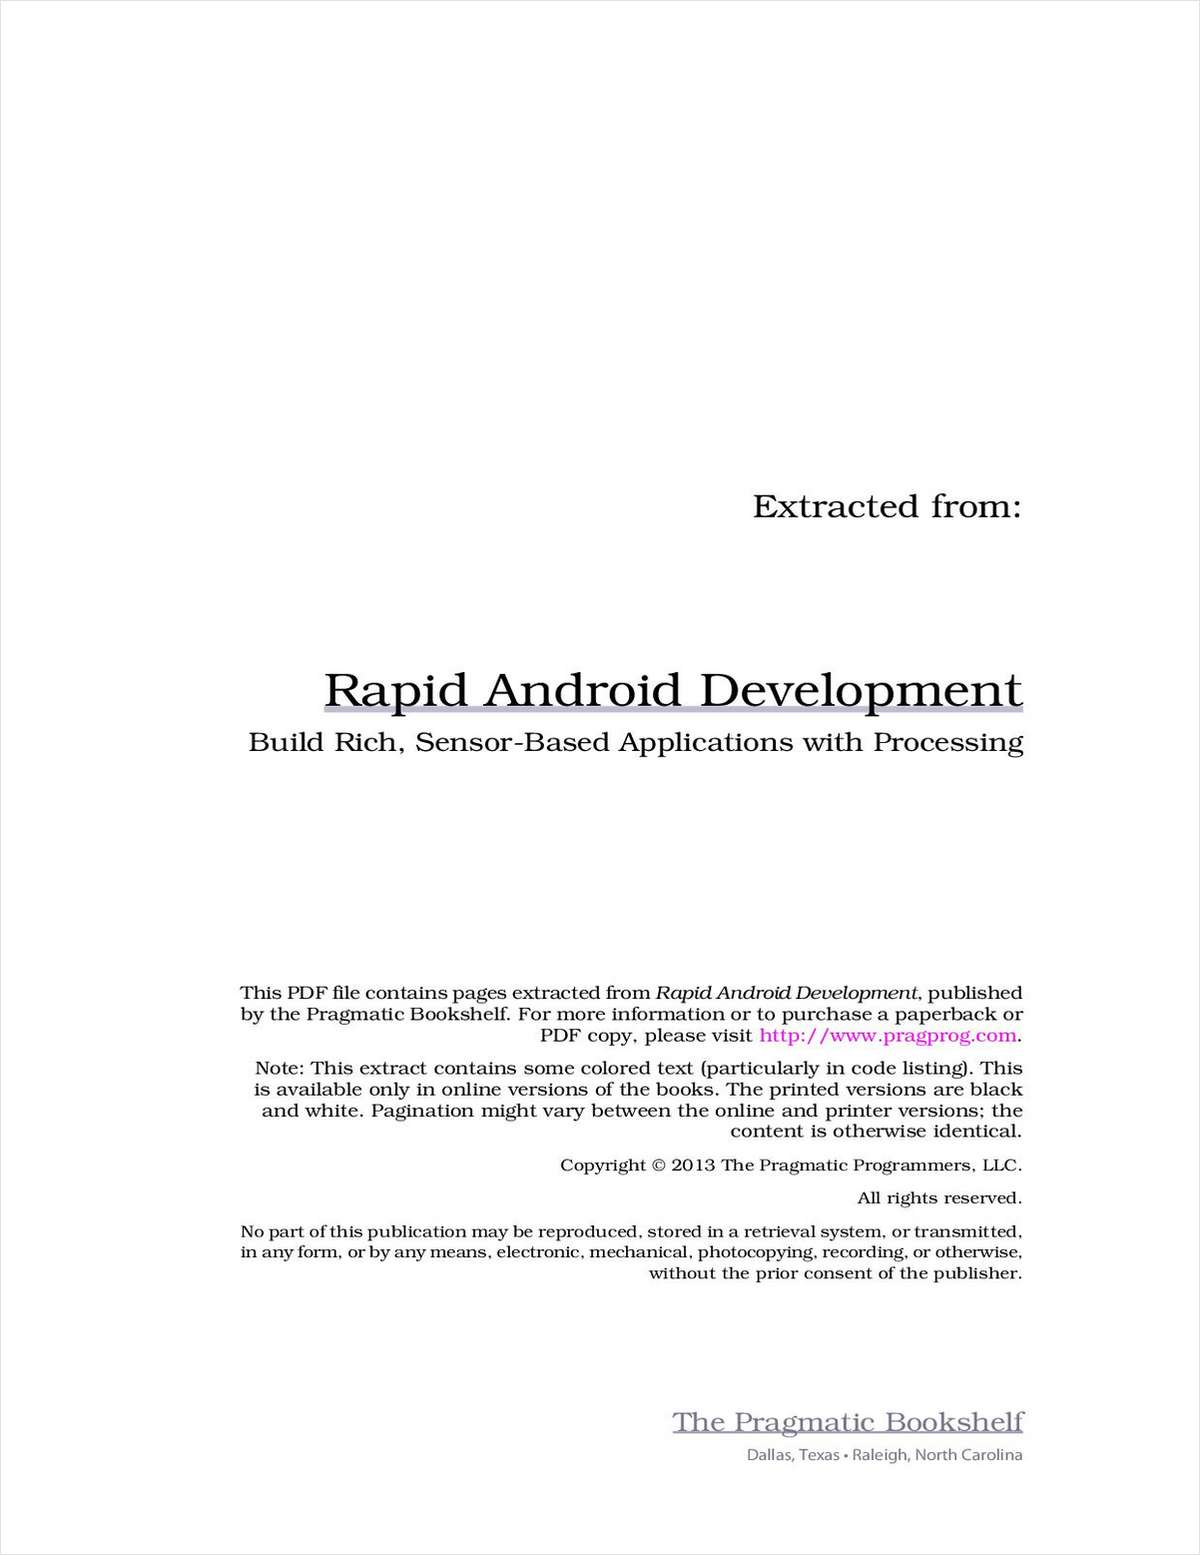 Rapid Android Development: Build Rich, Sensor-Based Applications with Processing